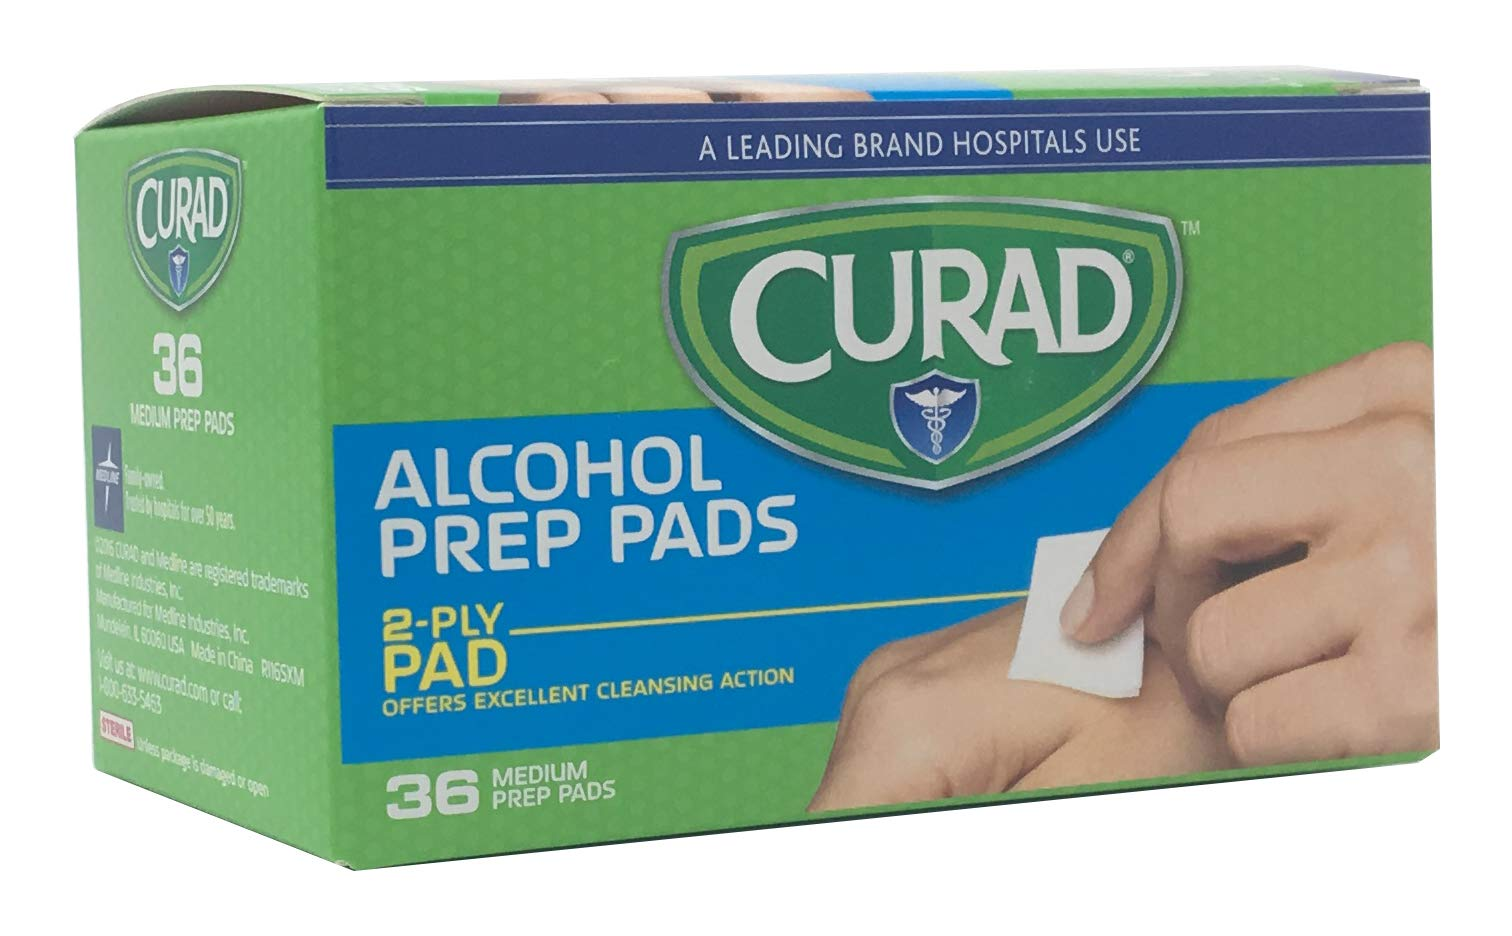 Curad Alcohol Prep Pads, 2-Ply Alcohol Swabs, Medium Size (Case of 1,080) by Curad